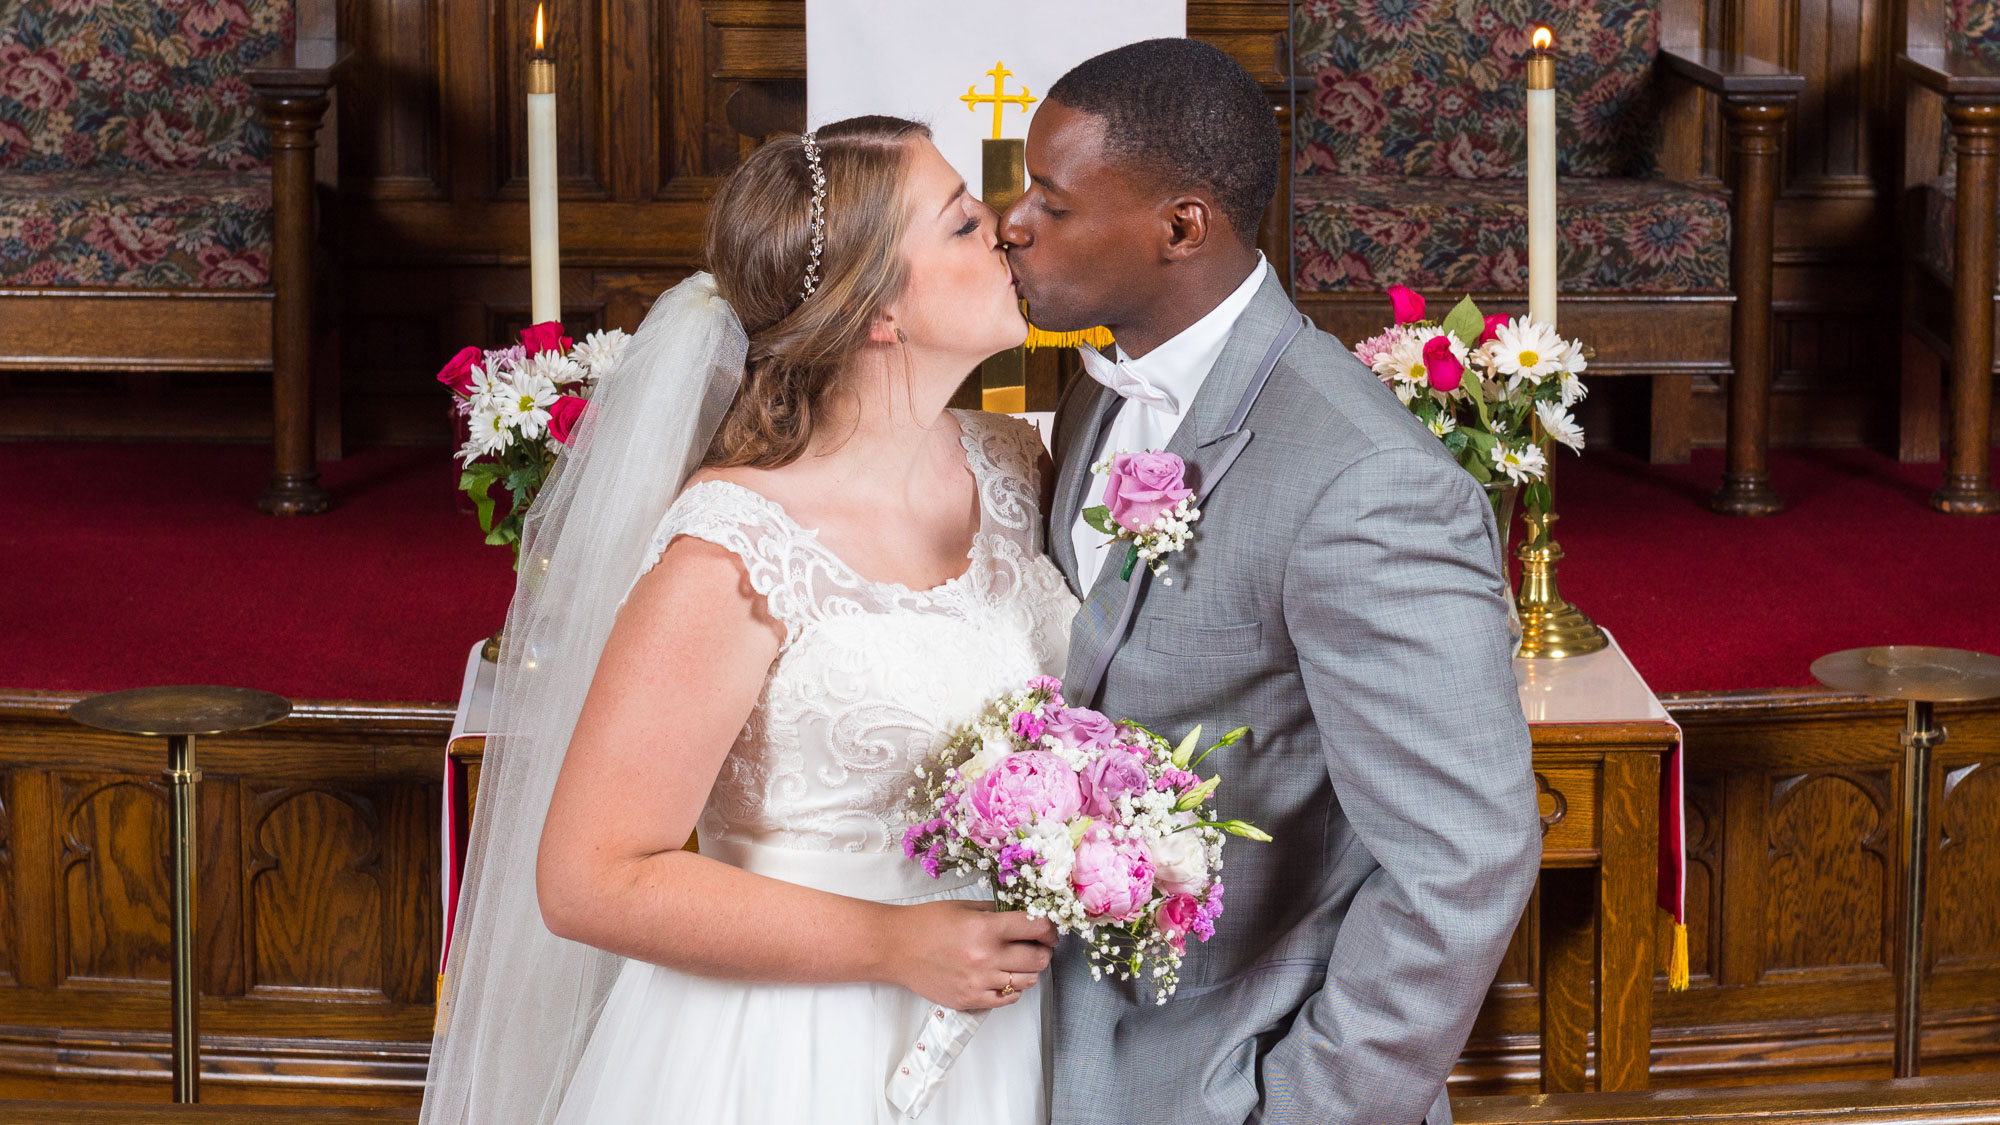 Bride_and_Groom_First_Kiss-2.jpg